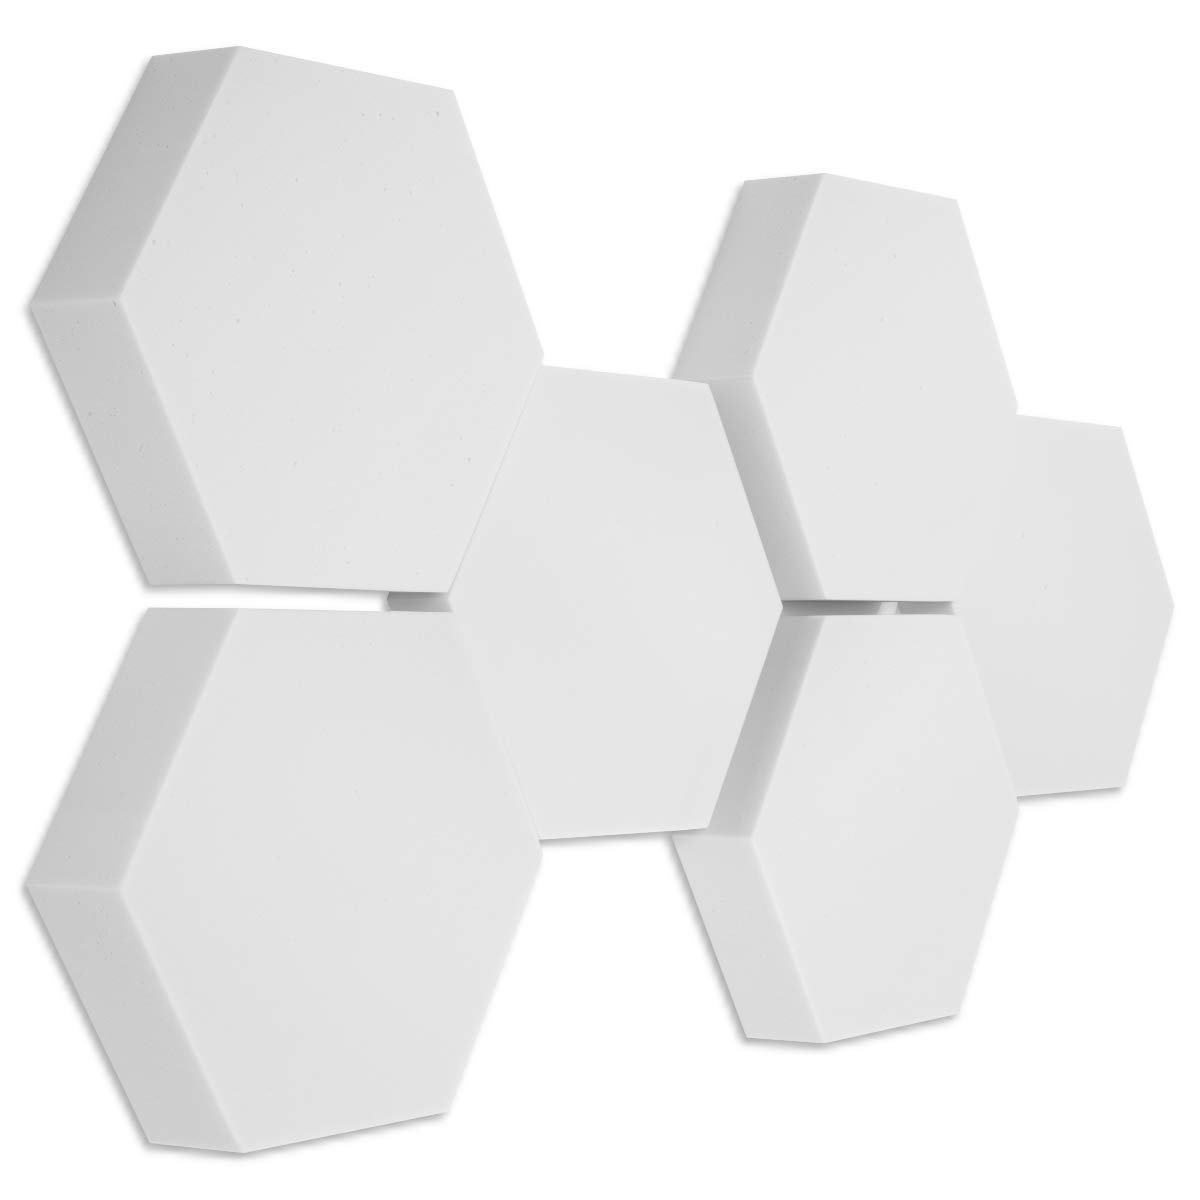 6 Basotect ® G+ Schallabsorber 3D-Set Hexagon Akustik Elemente - Stärke 50 70 mm